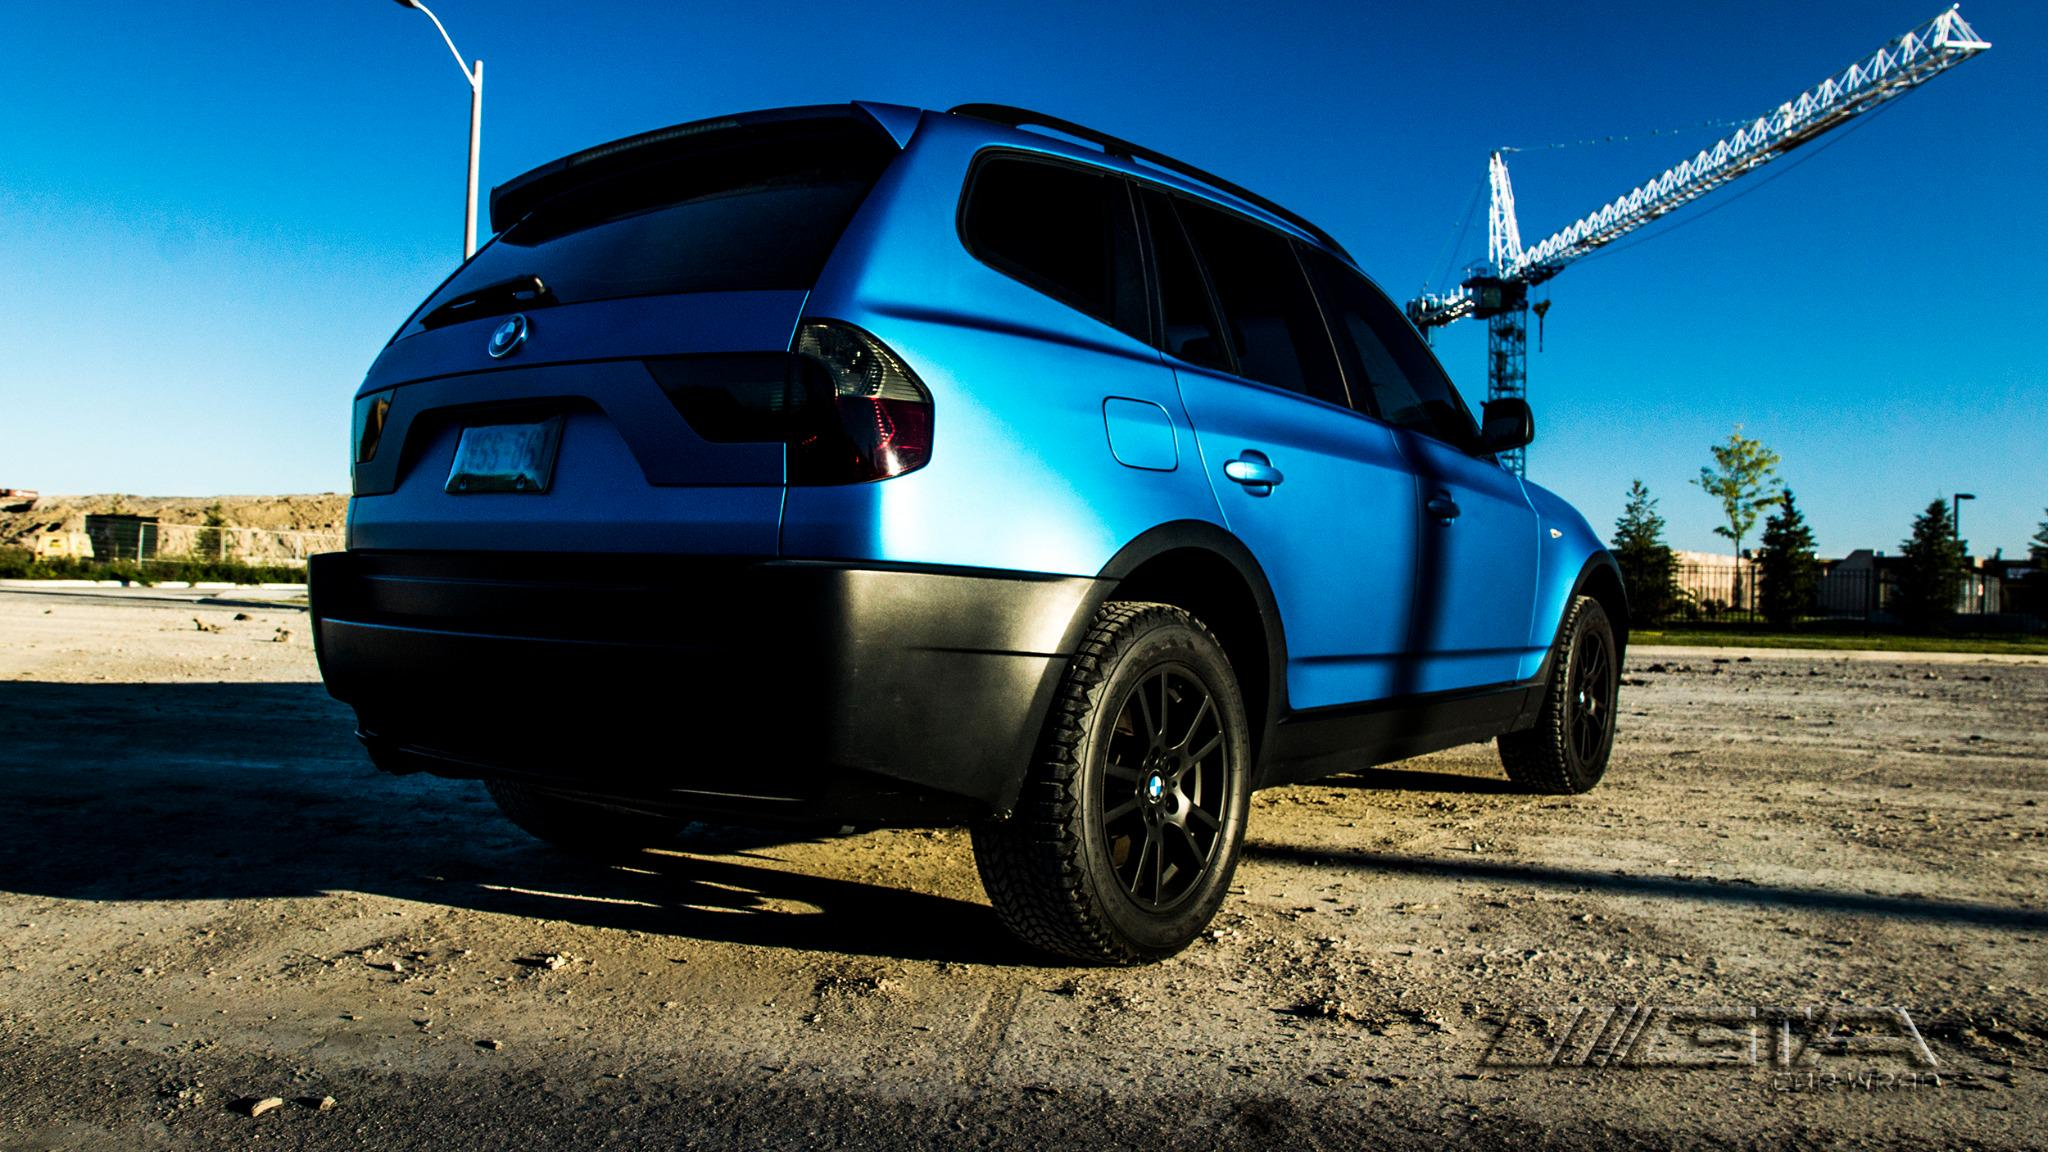 Gta Car Wrap On Twitter Quot Bmw X3 Transformed From Silver To Matte Blu Metallic By Gtacarwrap